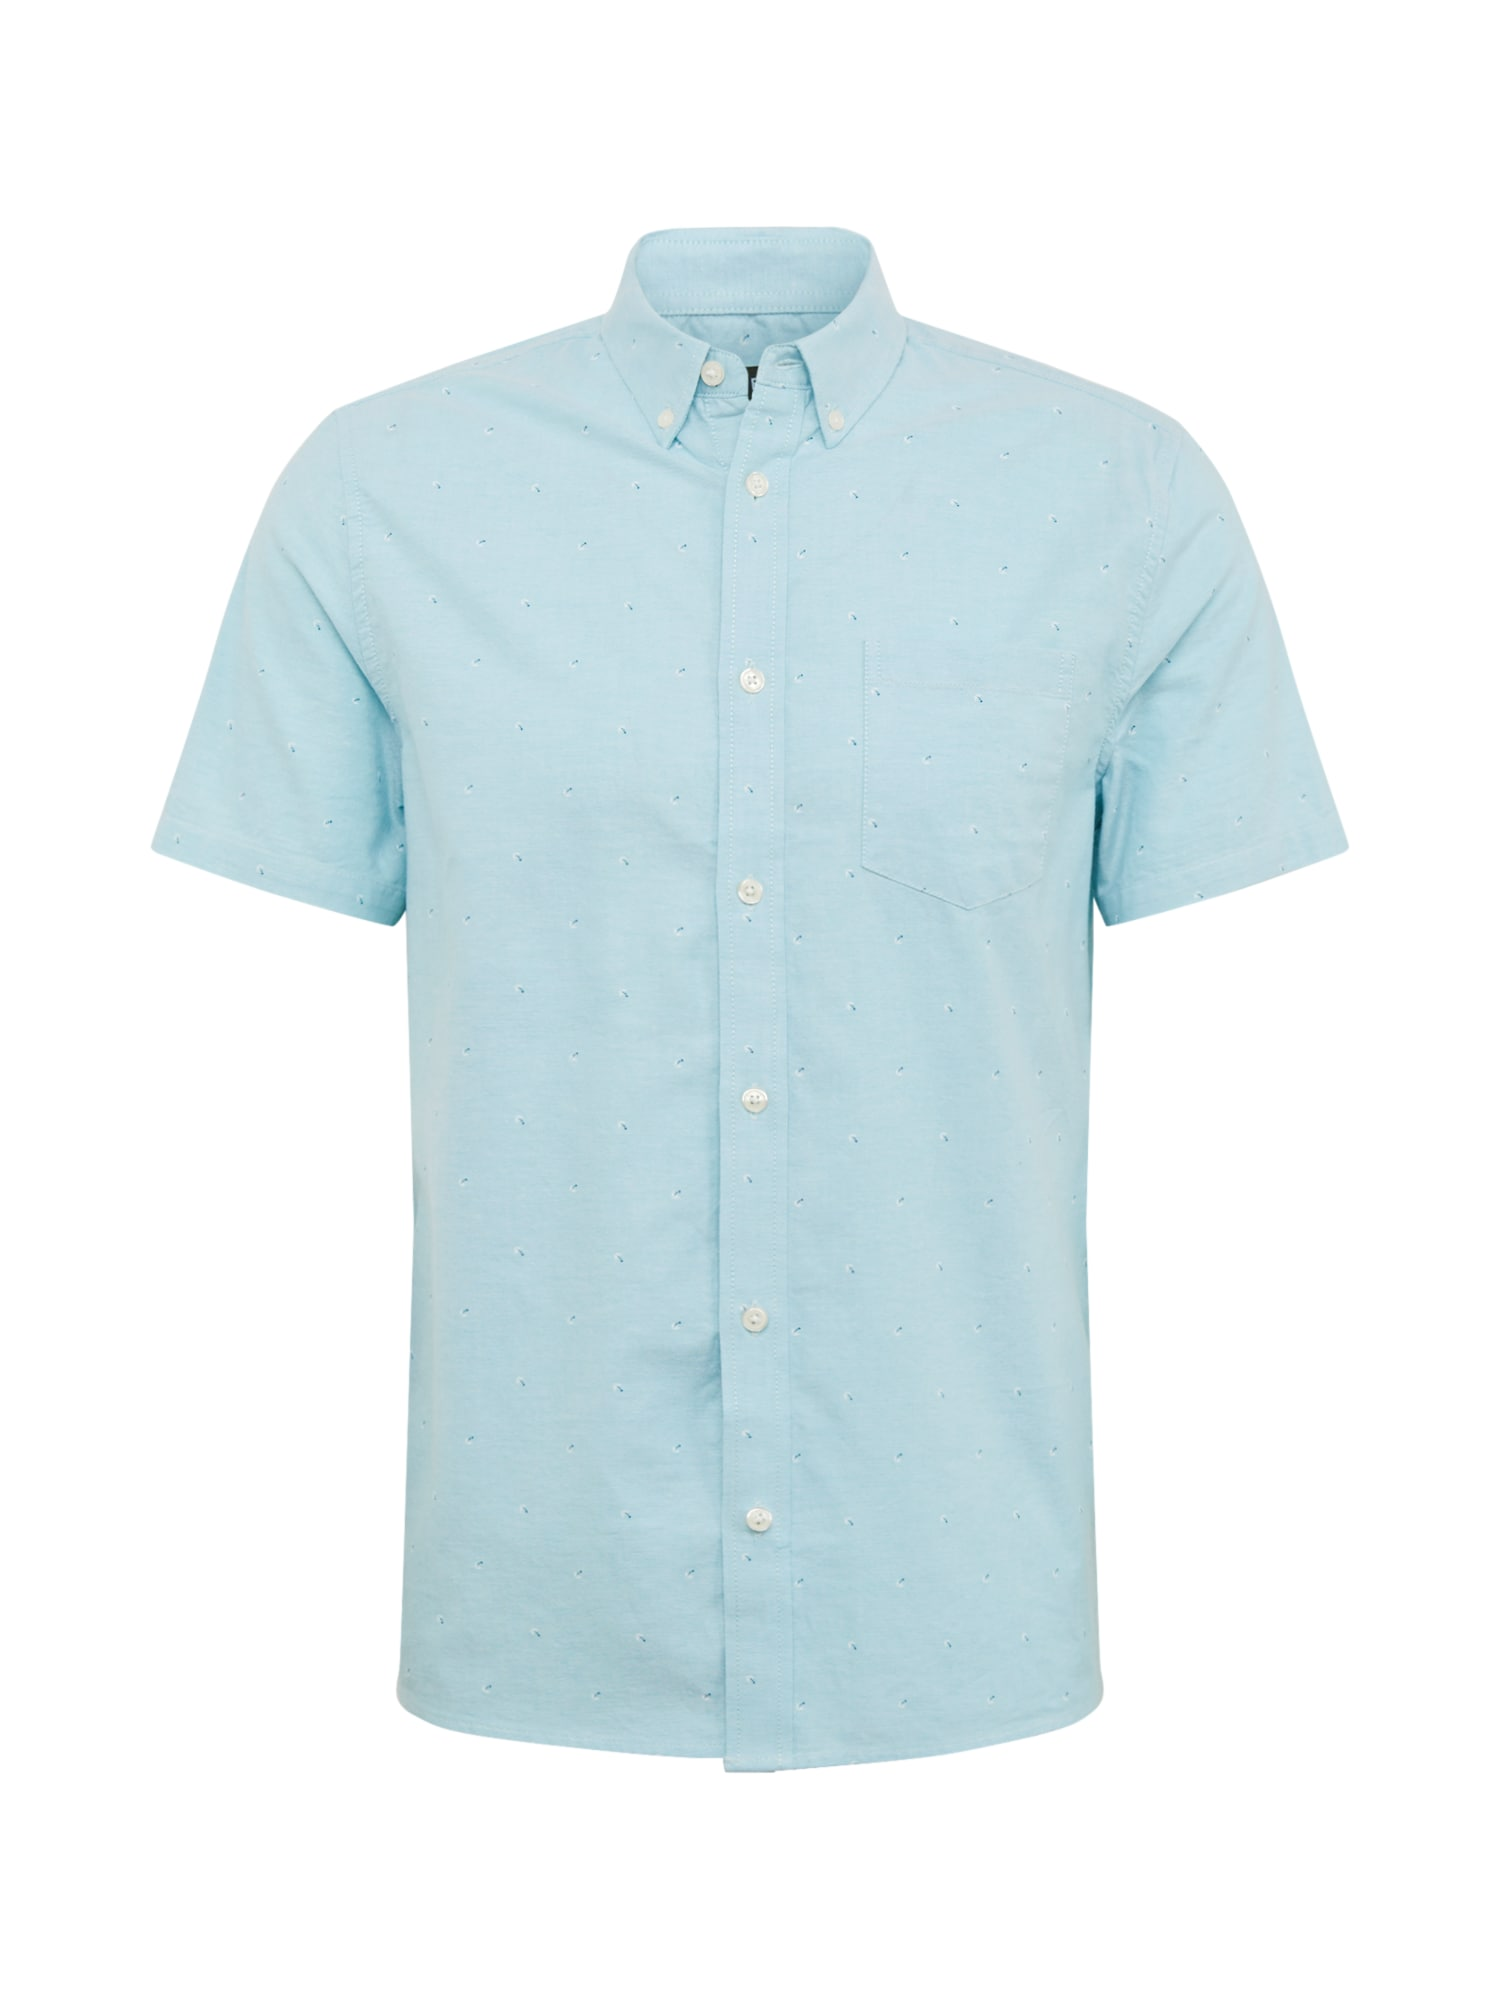 BURTON MENSWEAR LONDON Košeľa 'Palm Oxford'  modré